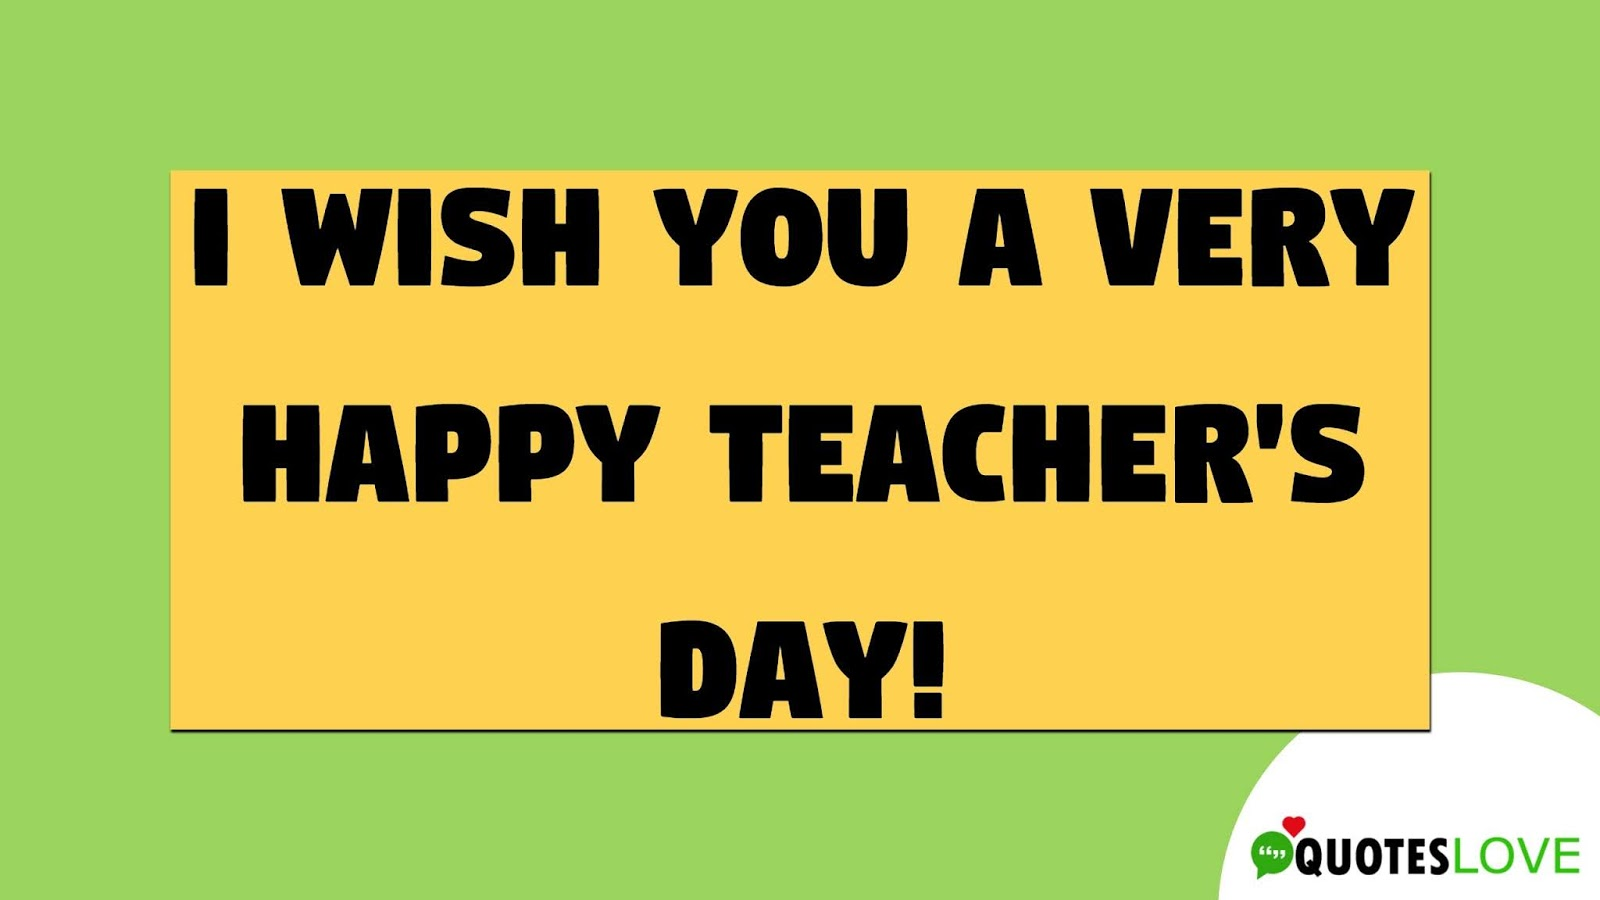 70+ (New) Happy Teachers Day Quotes, Status, Wishes, Images and Messages for Year 2019